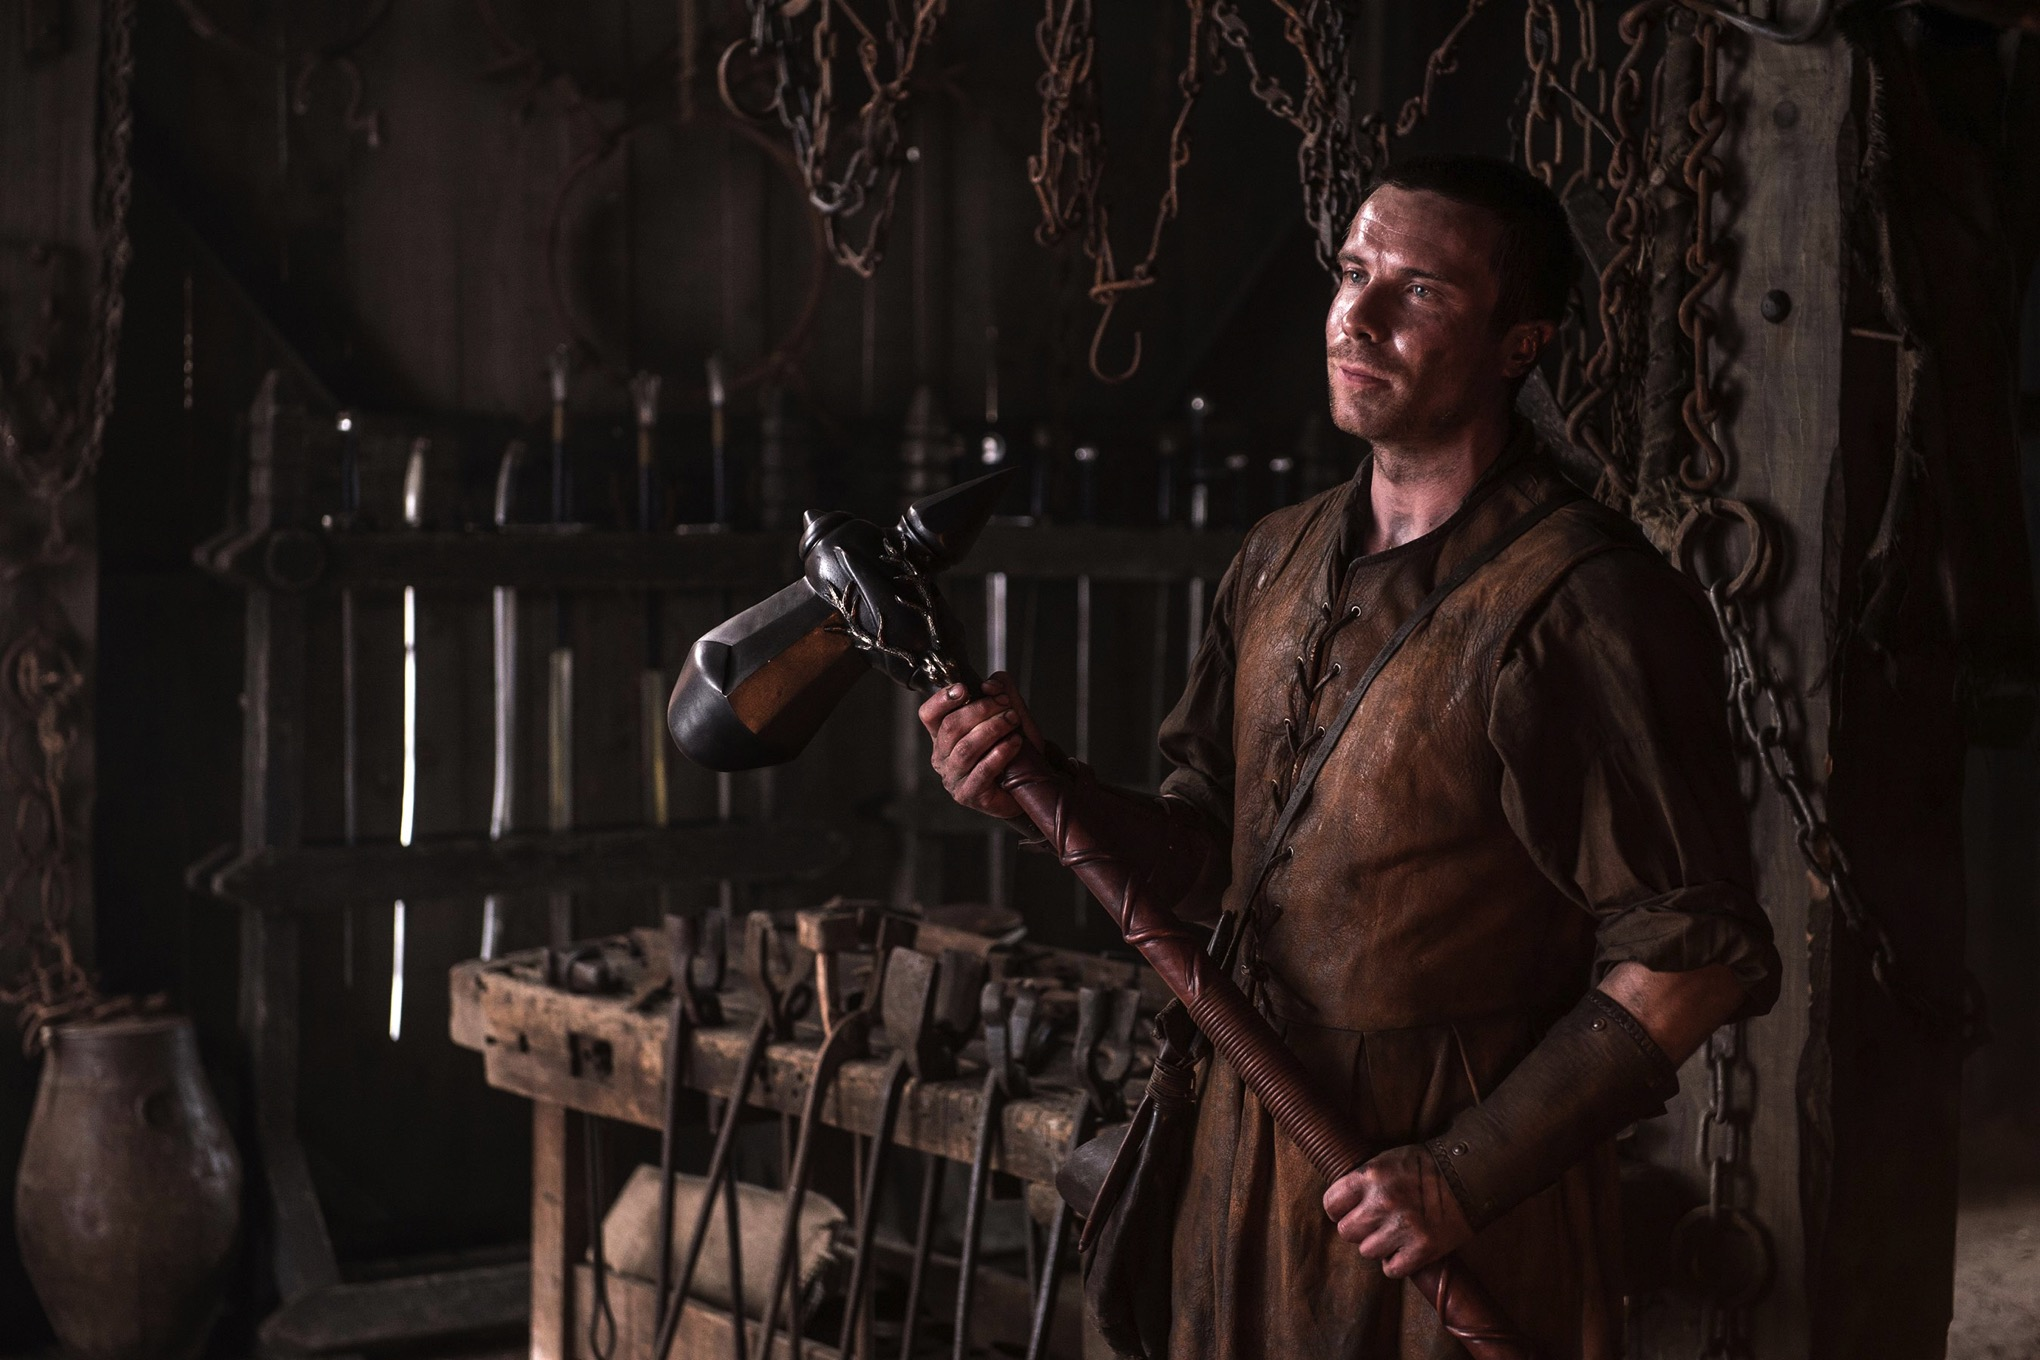 Game Of Thrones Season 7 Episode 5 Review: R + L = J